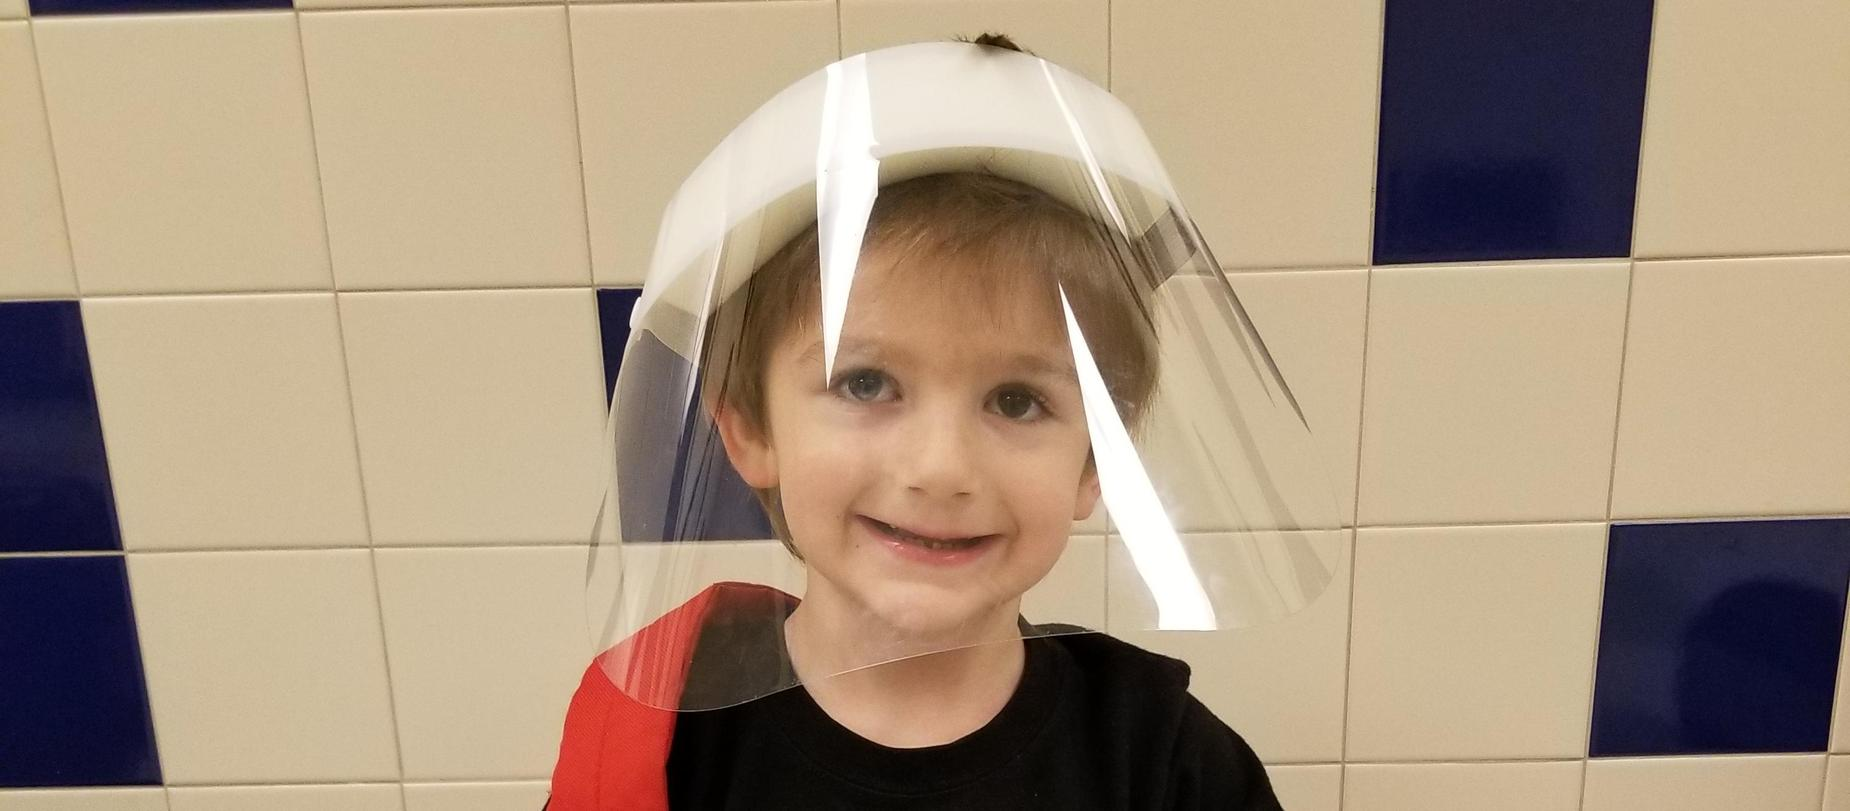 boy wearing face shield posing for the camera